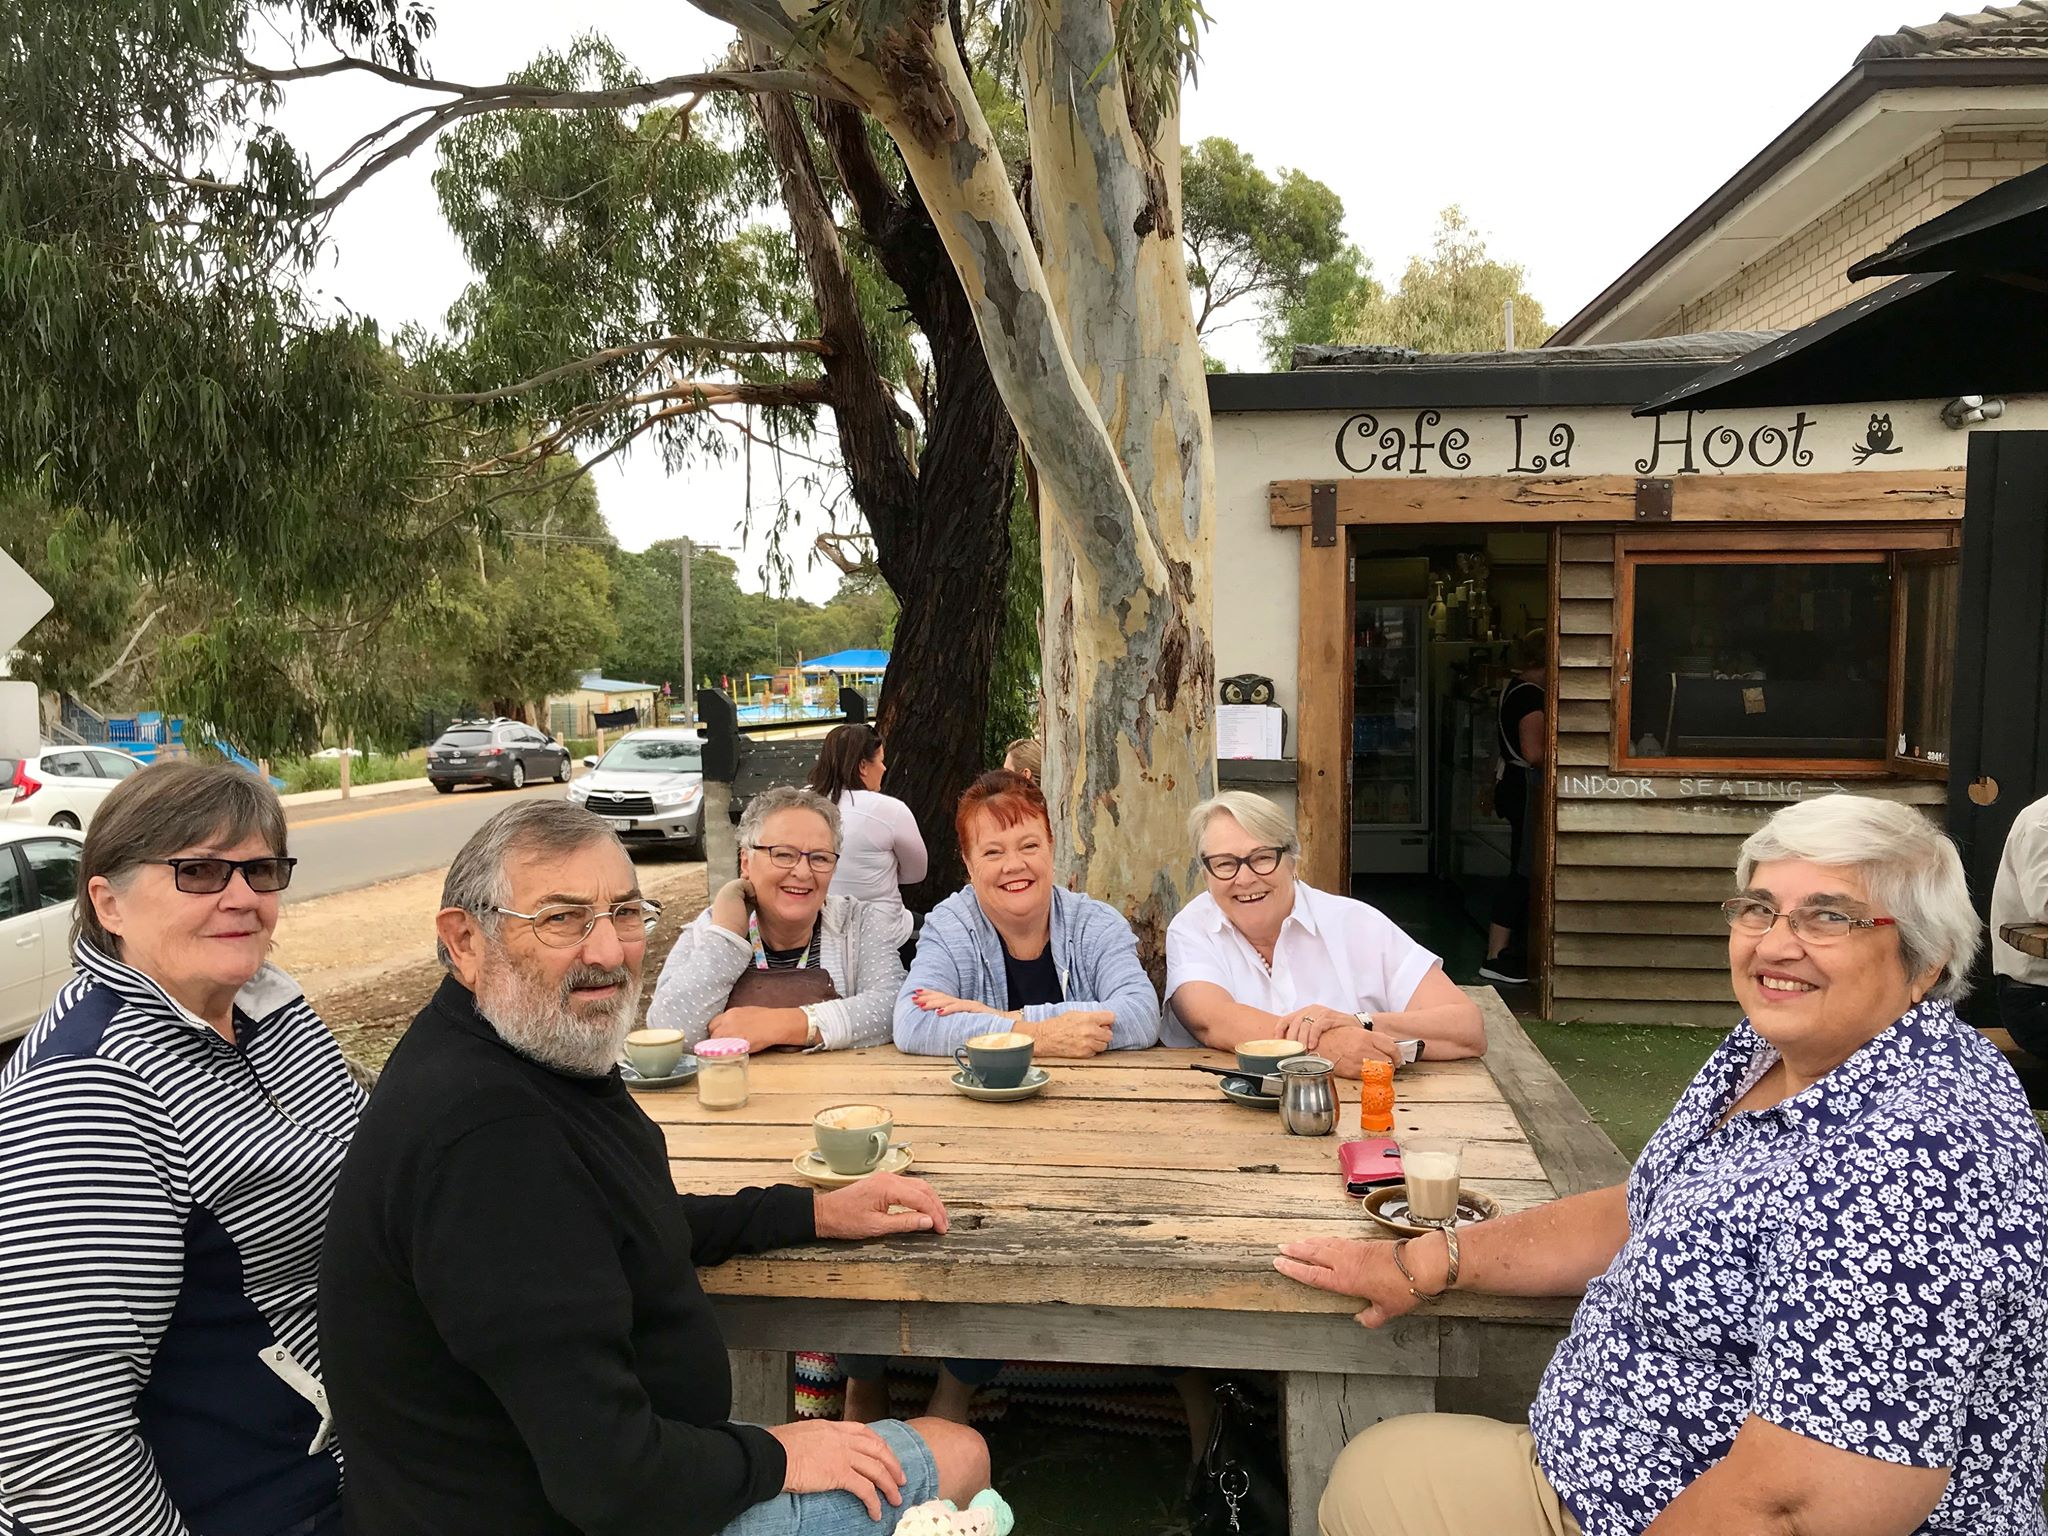 Jenny Bowker, Graham Lee, Laurel McLennan, Veronica McDonald and Julie Oataway and I at the Cafe La Hoot in the beautiful Winchelsea.